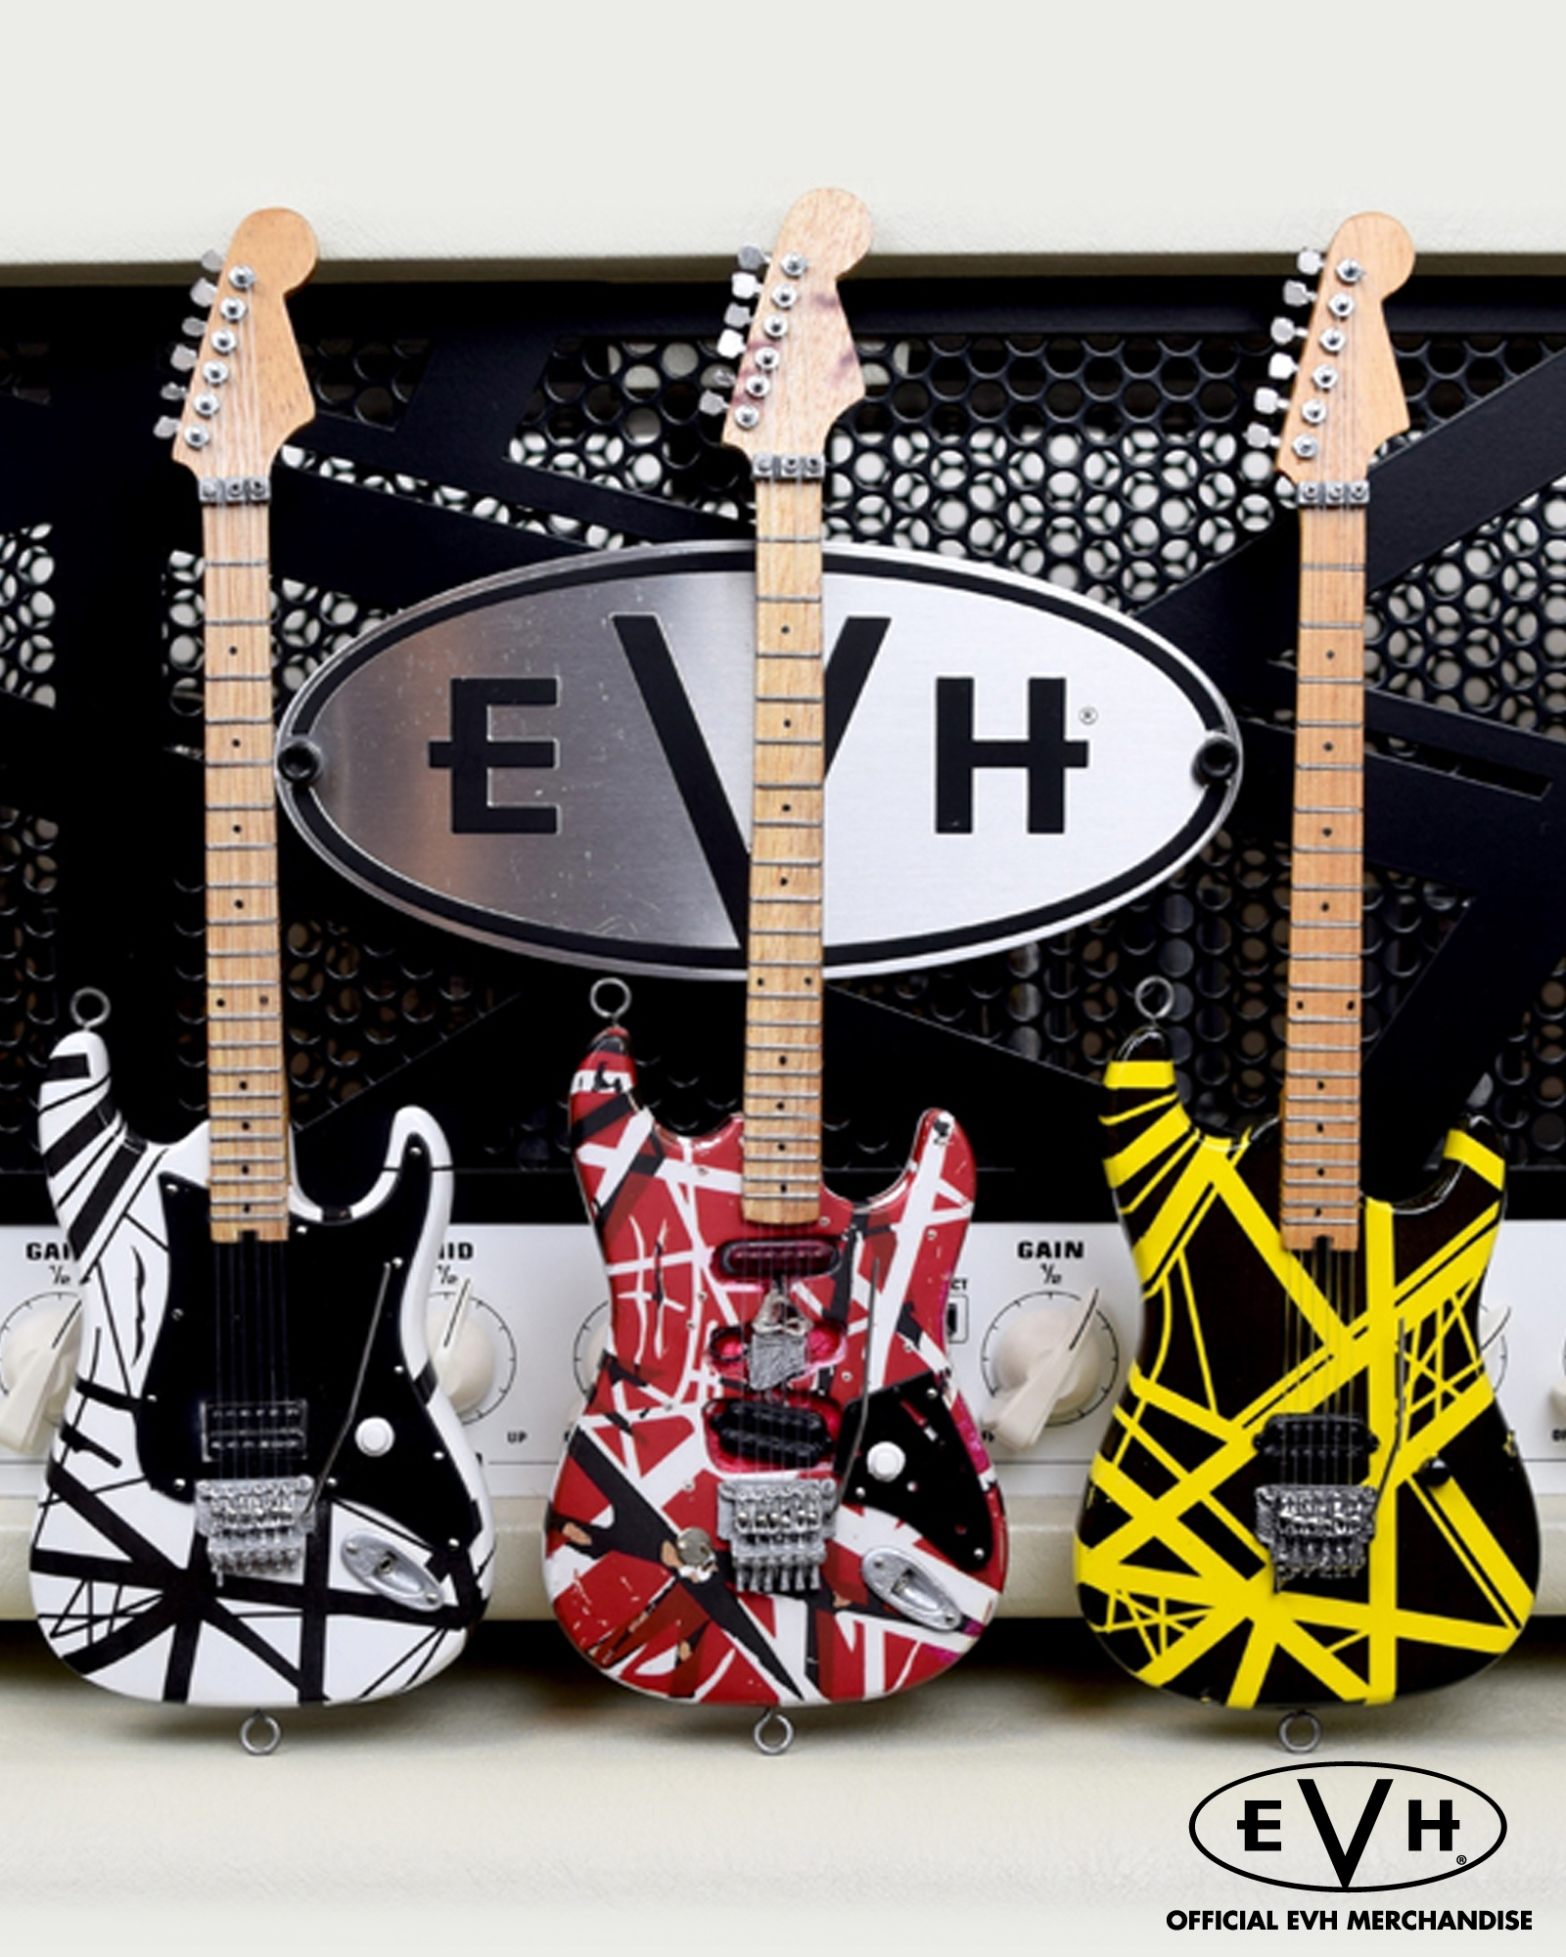 Officially Licensed EVH Mini Guitar Replicas by AXE HEAVEN®